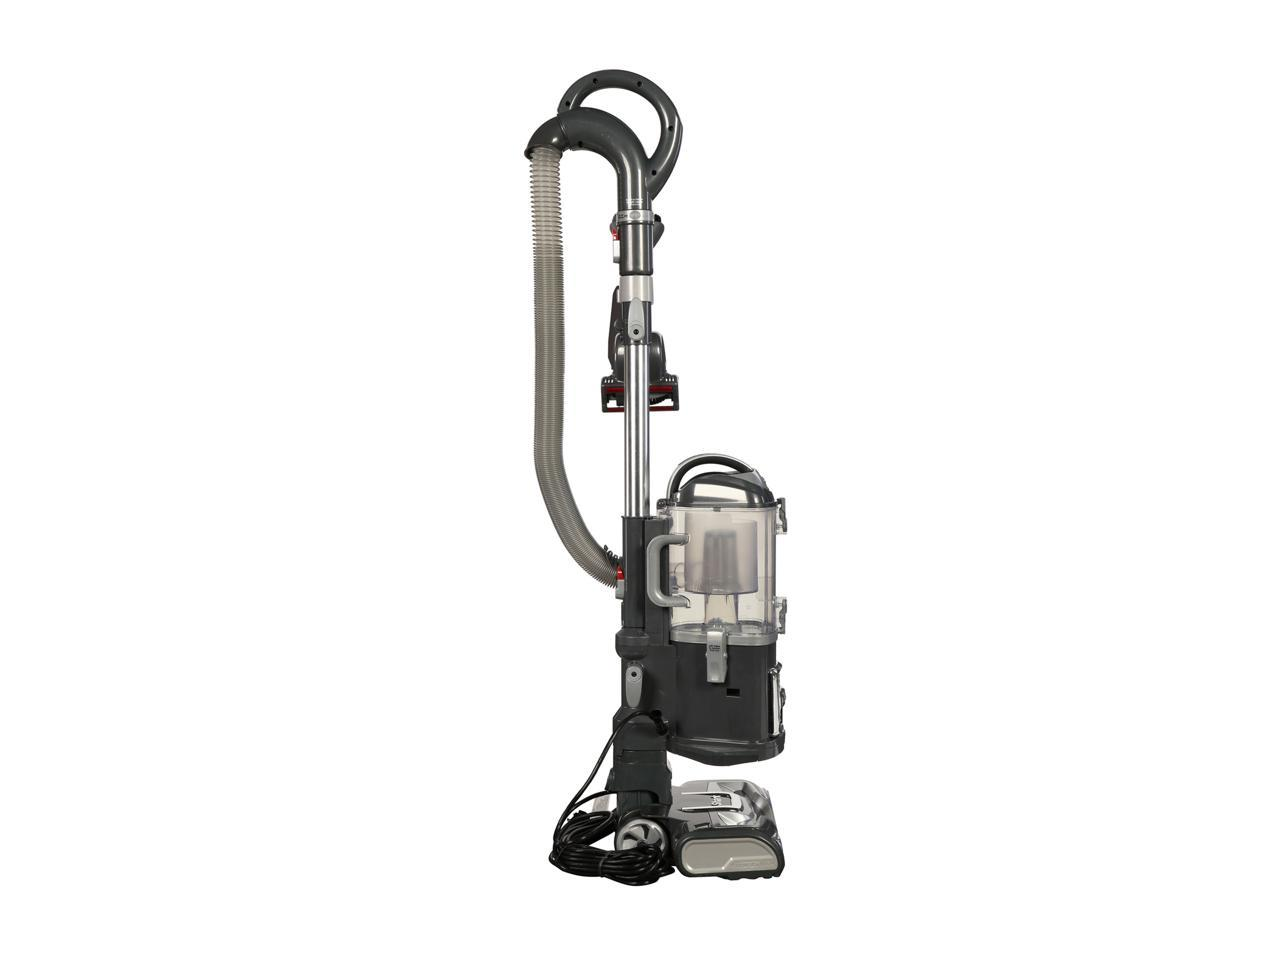 Shark-UV540-Navigator-Lift-Away-Professional-Upright-Vacuum-Gray thumbnail 4